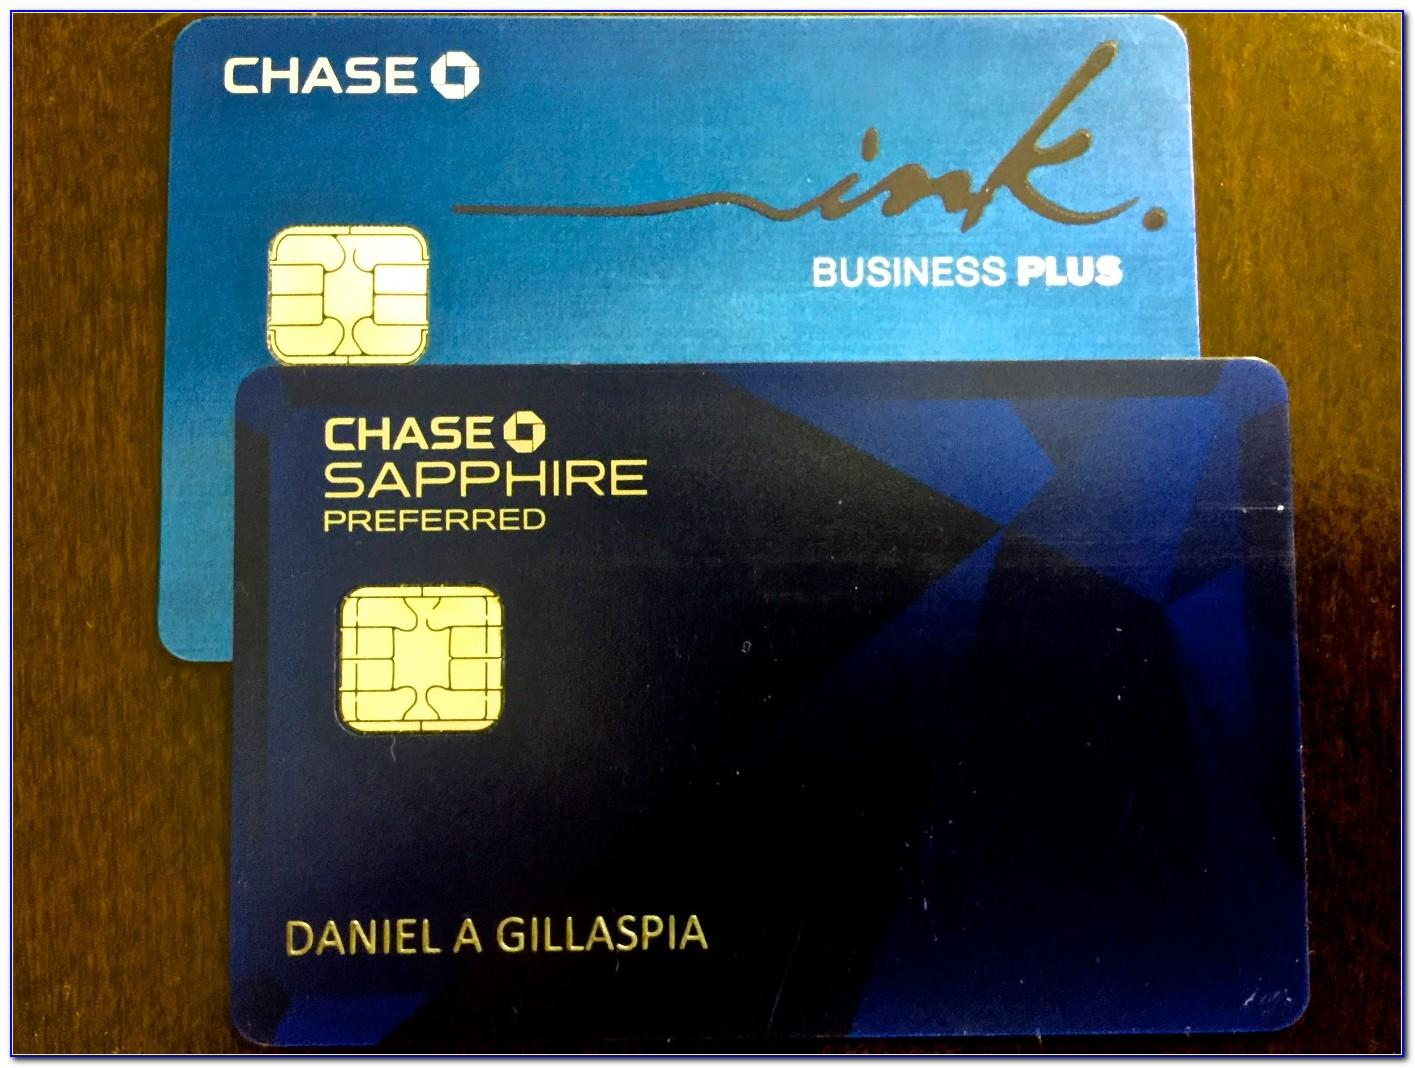 Chase Ink Business Preferred Card 100k